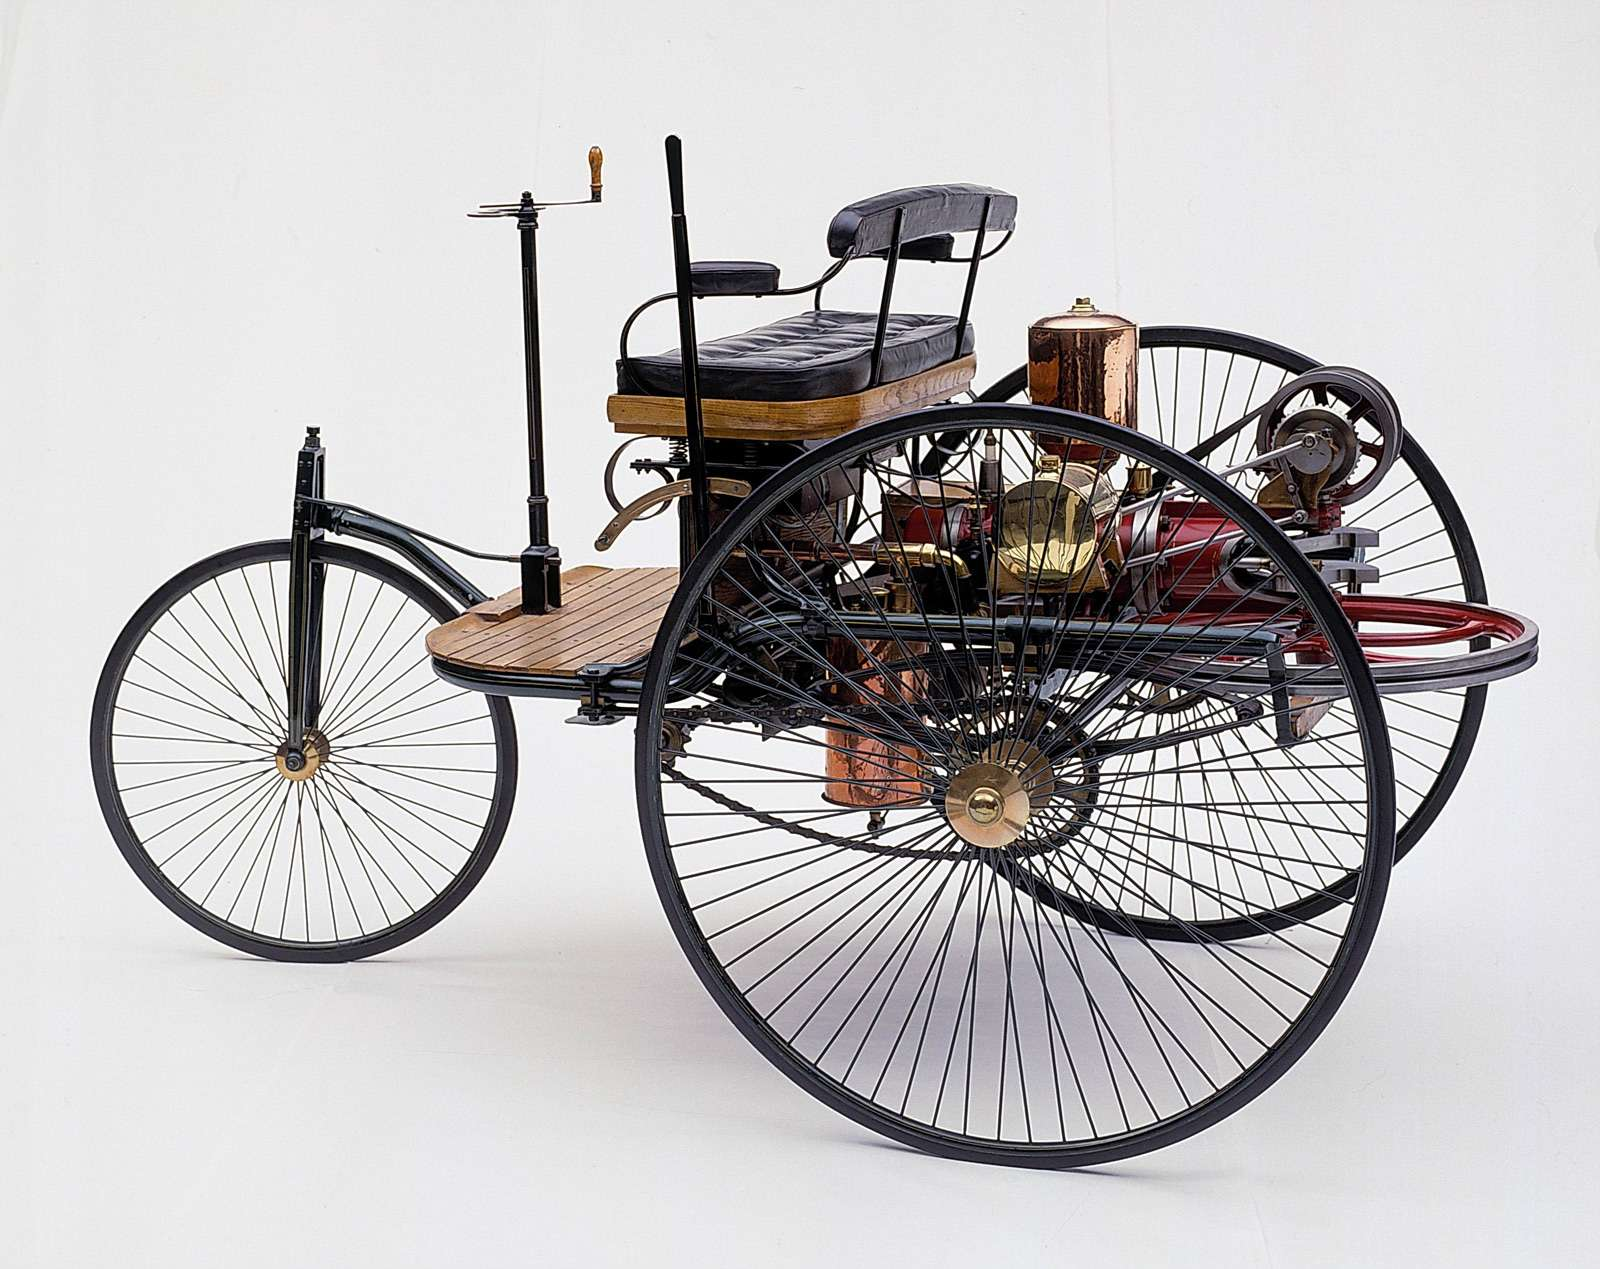 karl benz and the benz patent German mechanical engineer karl benz took the horseless carriage to new heights but his wife bertha was the one who took it to the road, creating a new industry in the process.